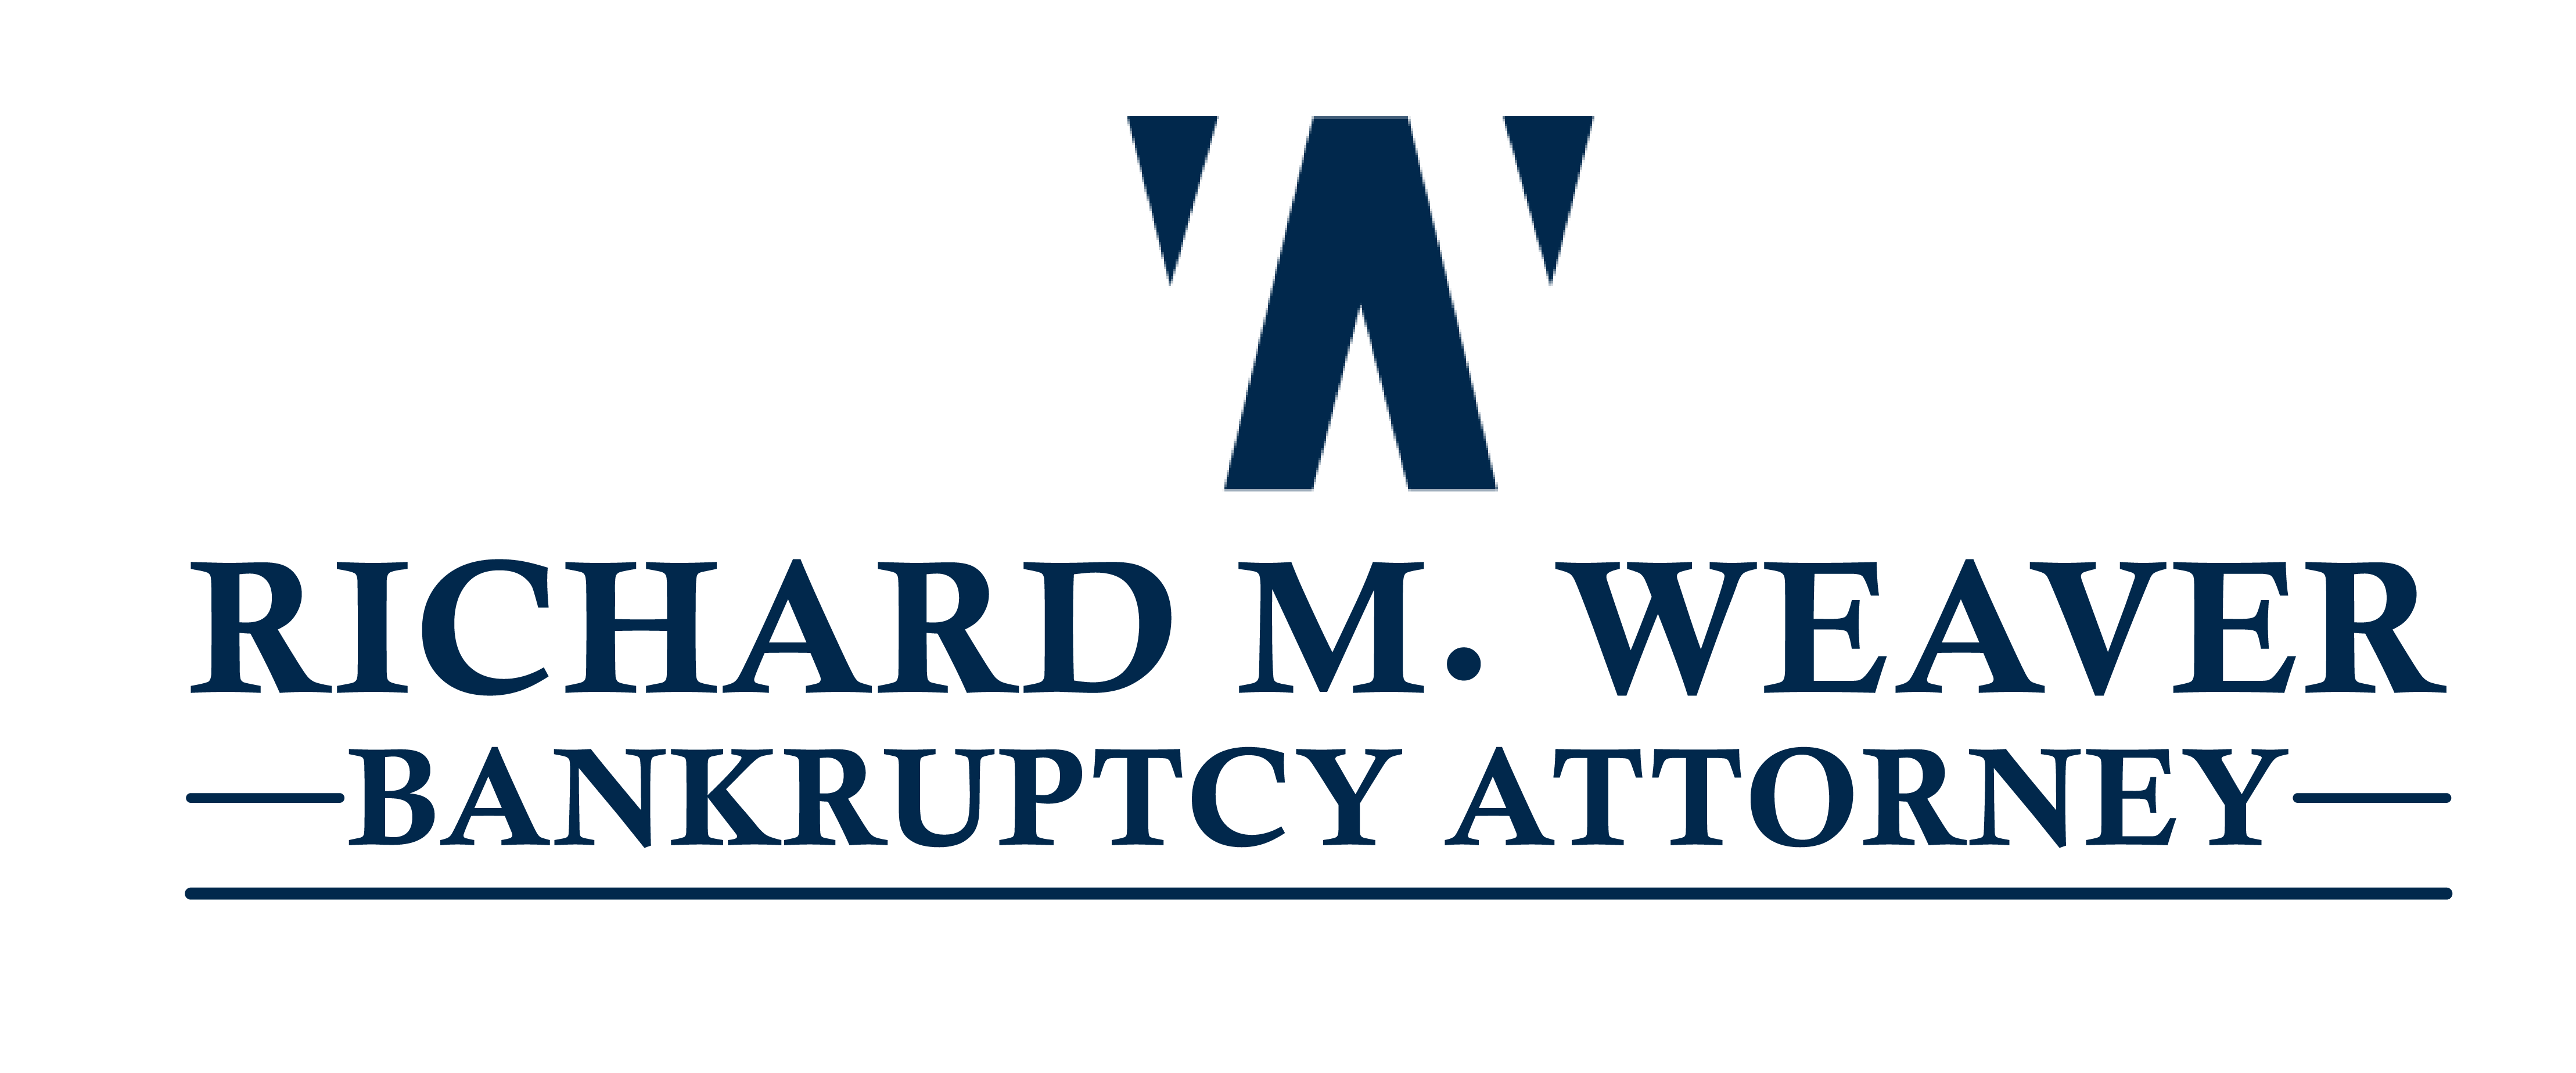 Richard M. Weaver Bankruptcy Attorney is Helping Clients Navigate Their Financial Troubles Through Bankruptcy in Haltom City